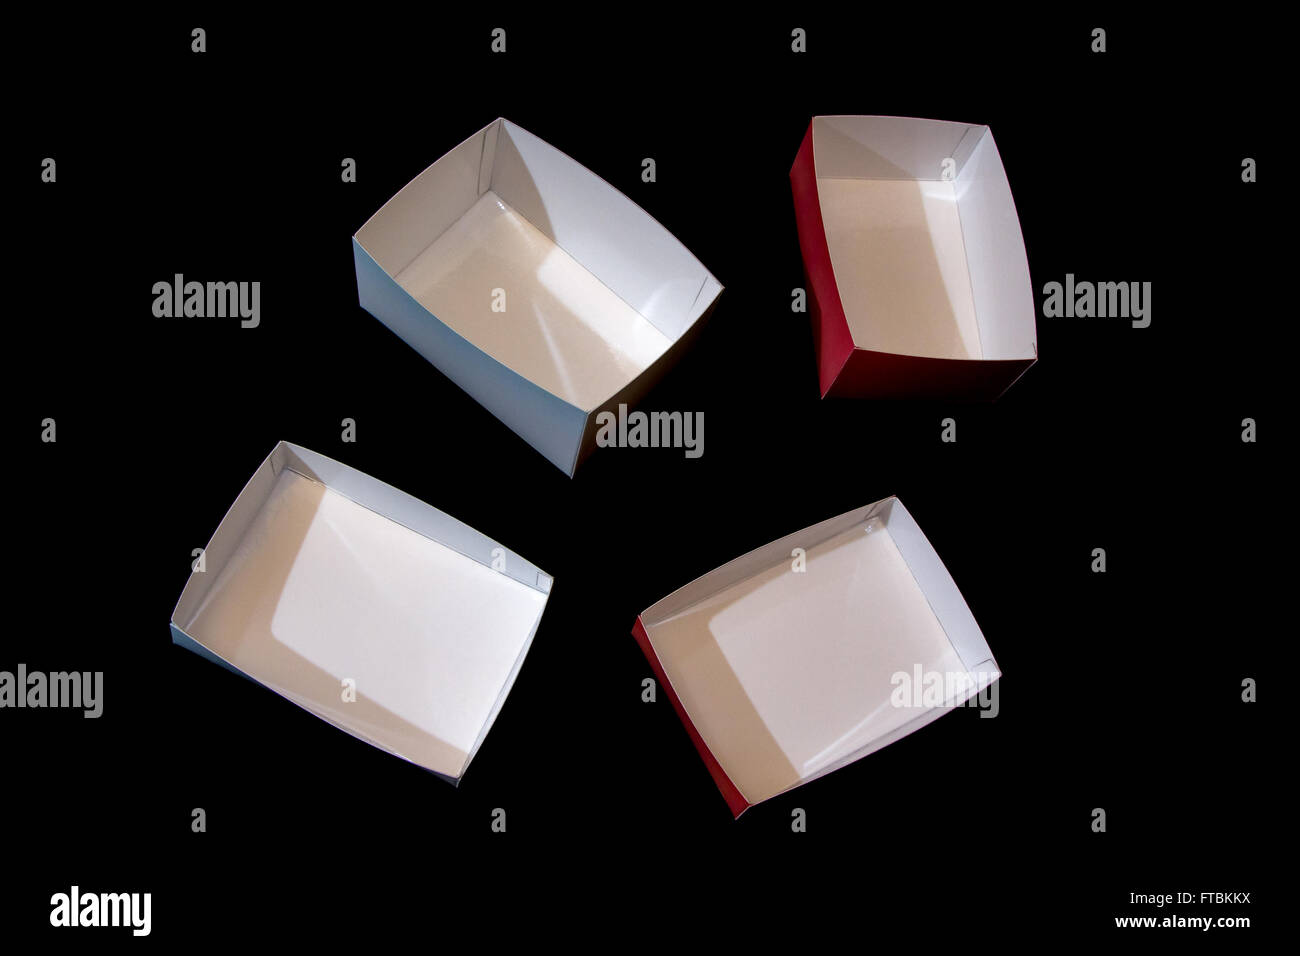 four small colored boxes made of laminated paper - Stock Image